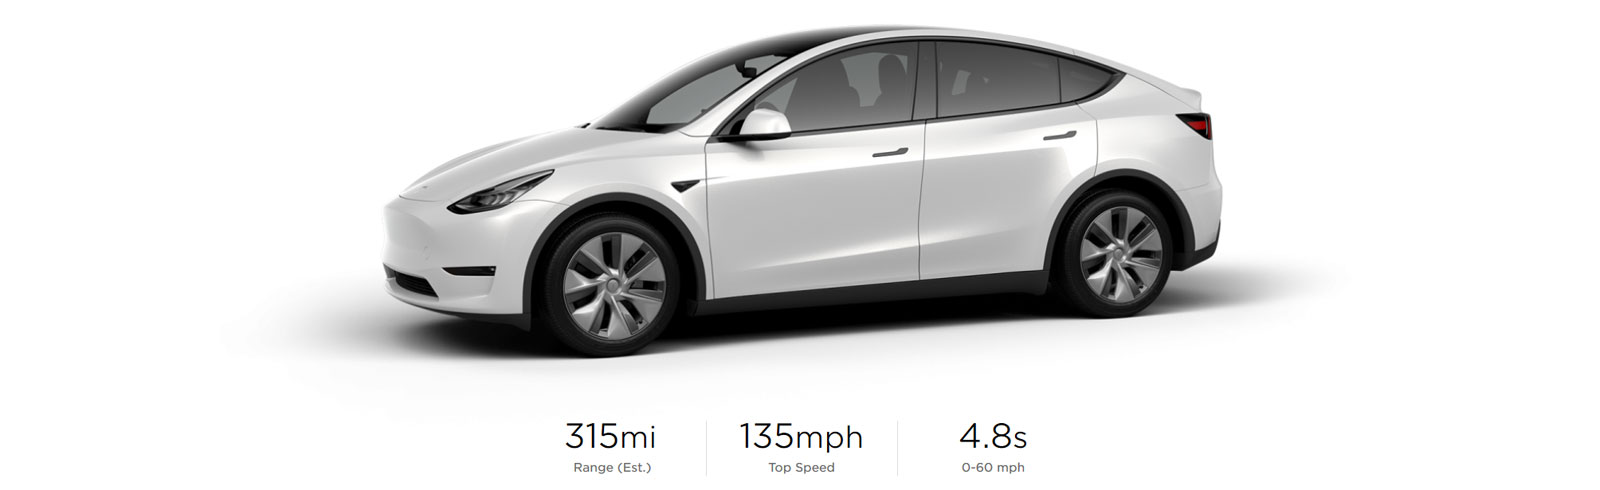 Tesla Model Y range increases to 315 miles, first deliveries are scheduled for March